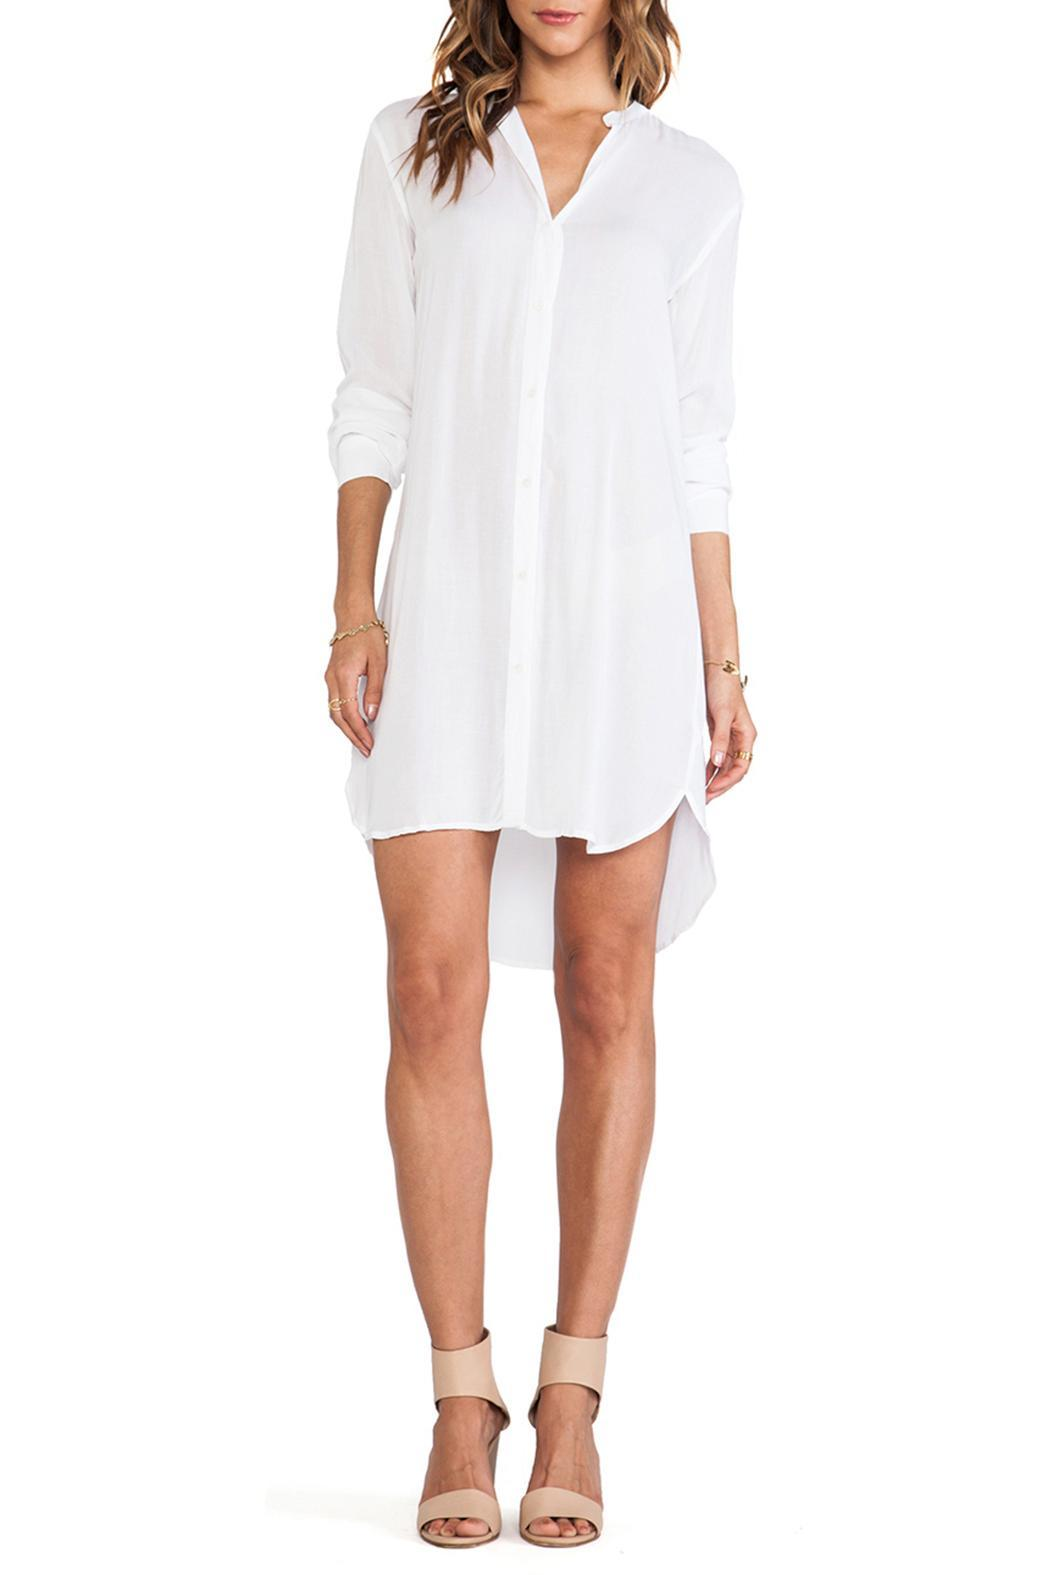 James Perse Collarless White Shirtdress From Vermont By